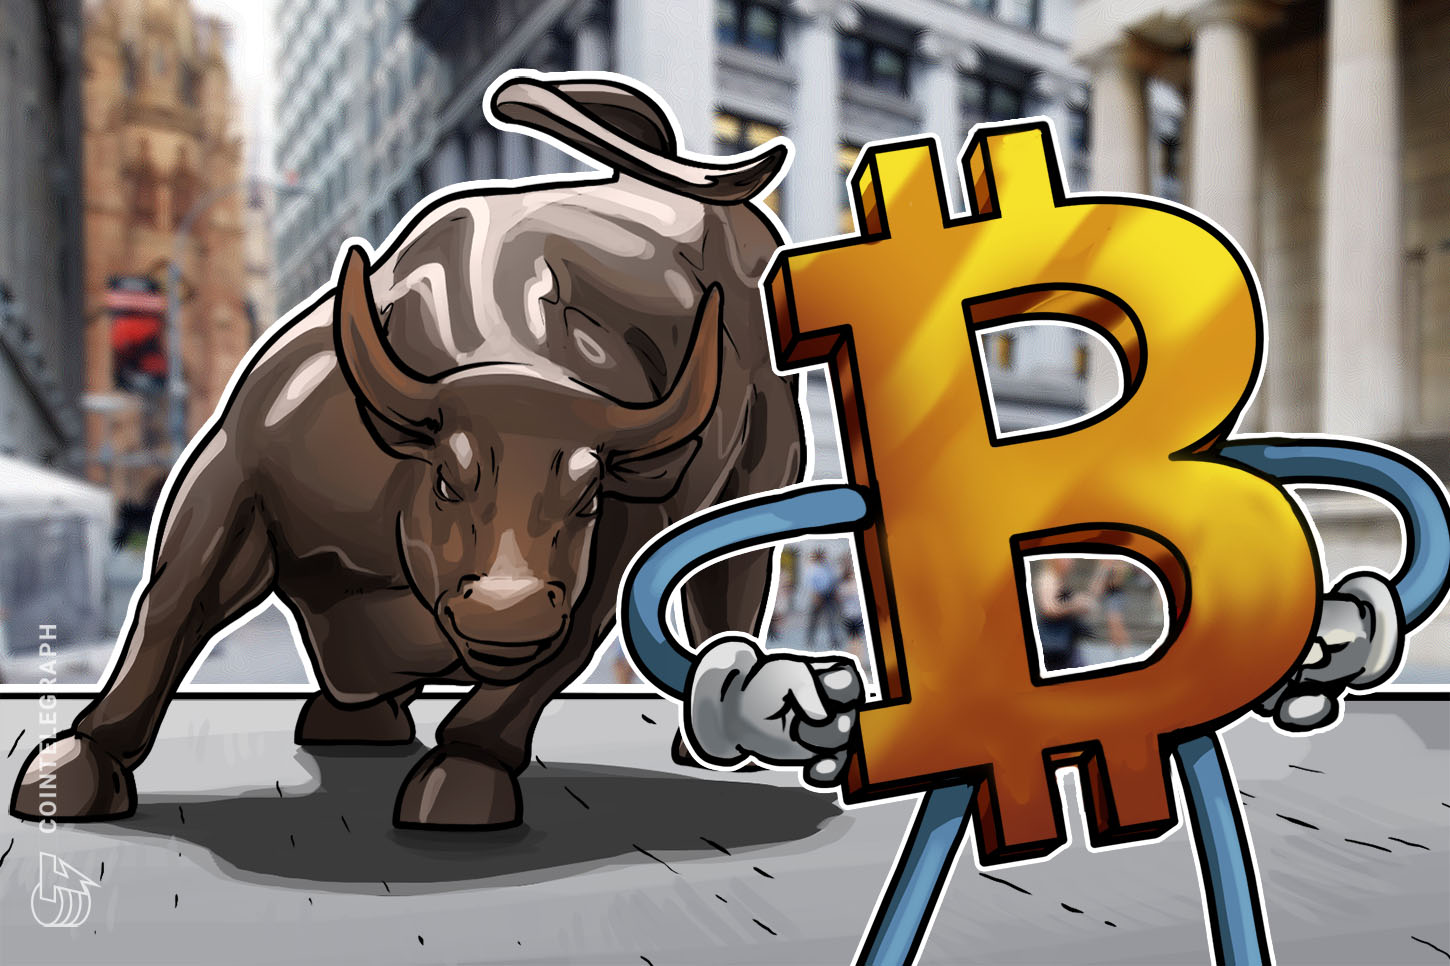 '<bold>Stealth</bold> phase' over? Why Wall Street FOMO will make $20K Bitcoin look cheap